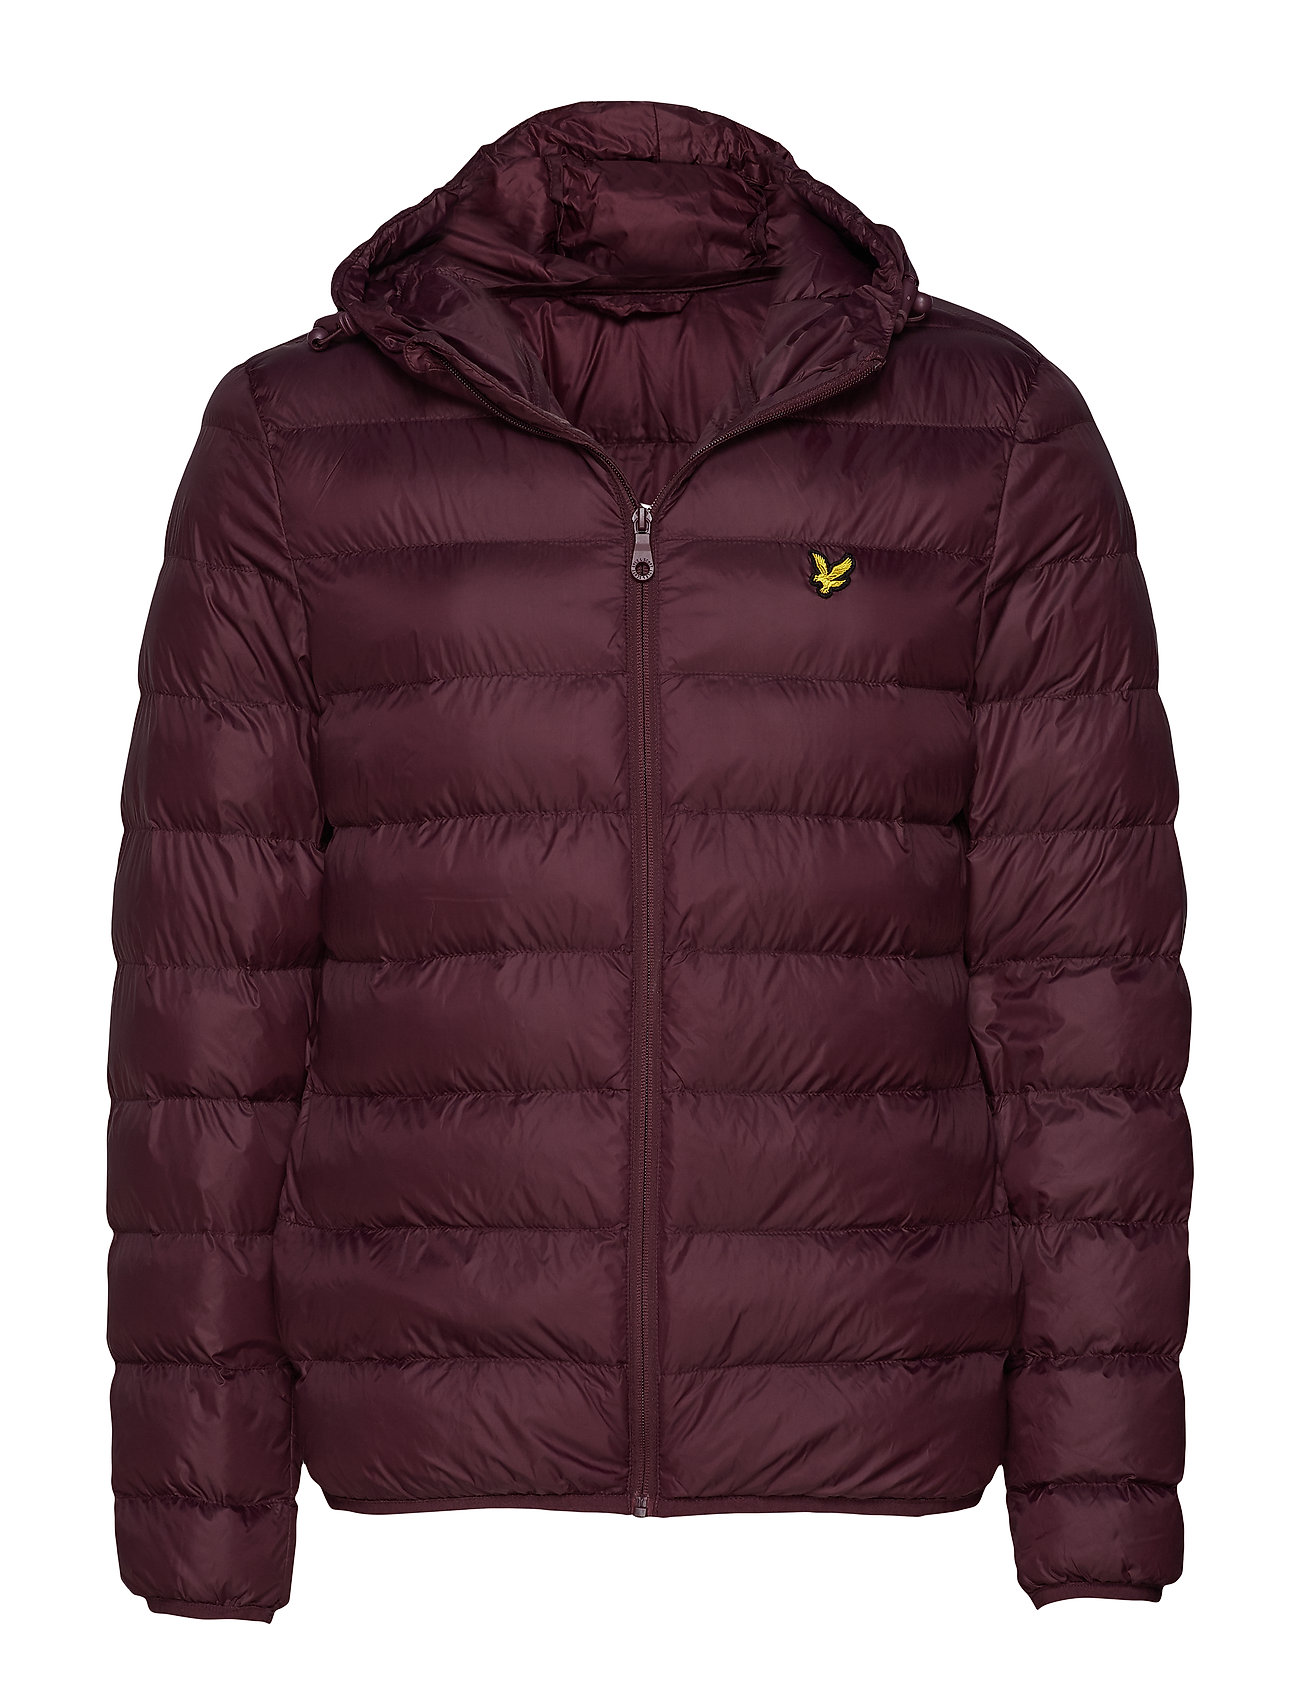 Lyle & Scott Lightweight Puffer Jacket - BURGUNDY